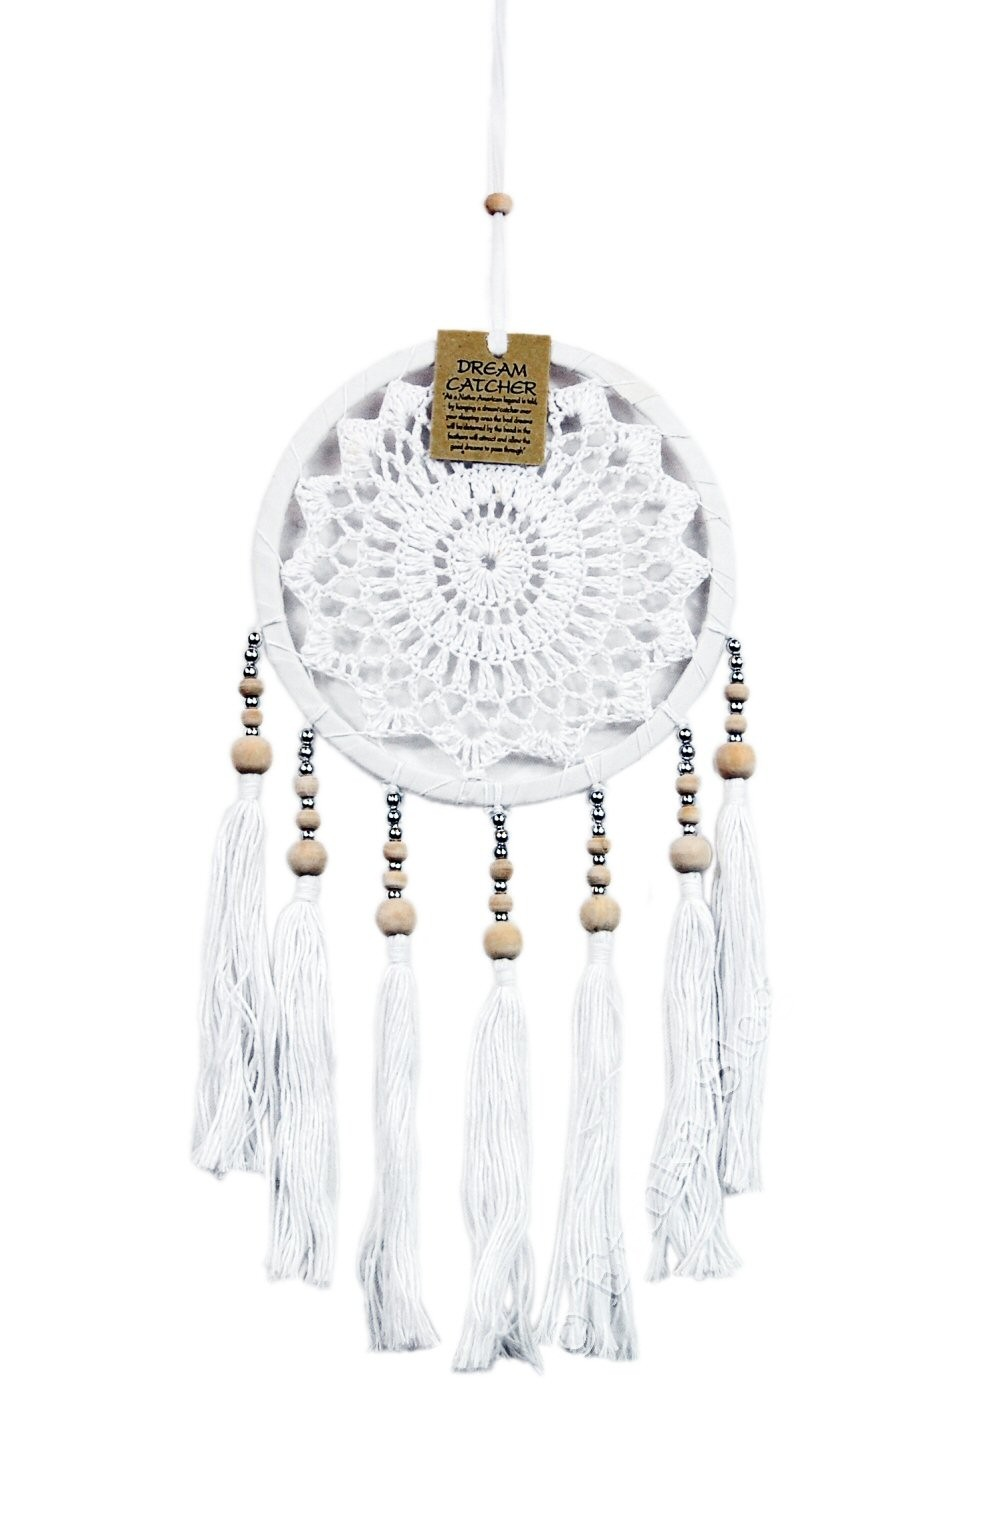 DREAM CATCHER OG-IDD570-03 - Oriente Import S.r.l.